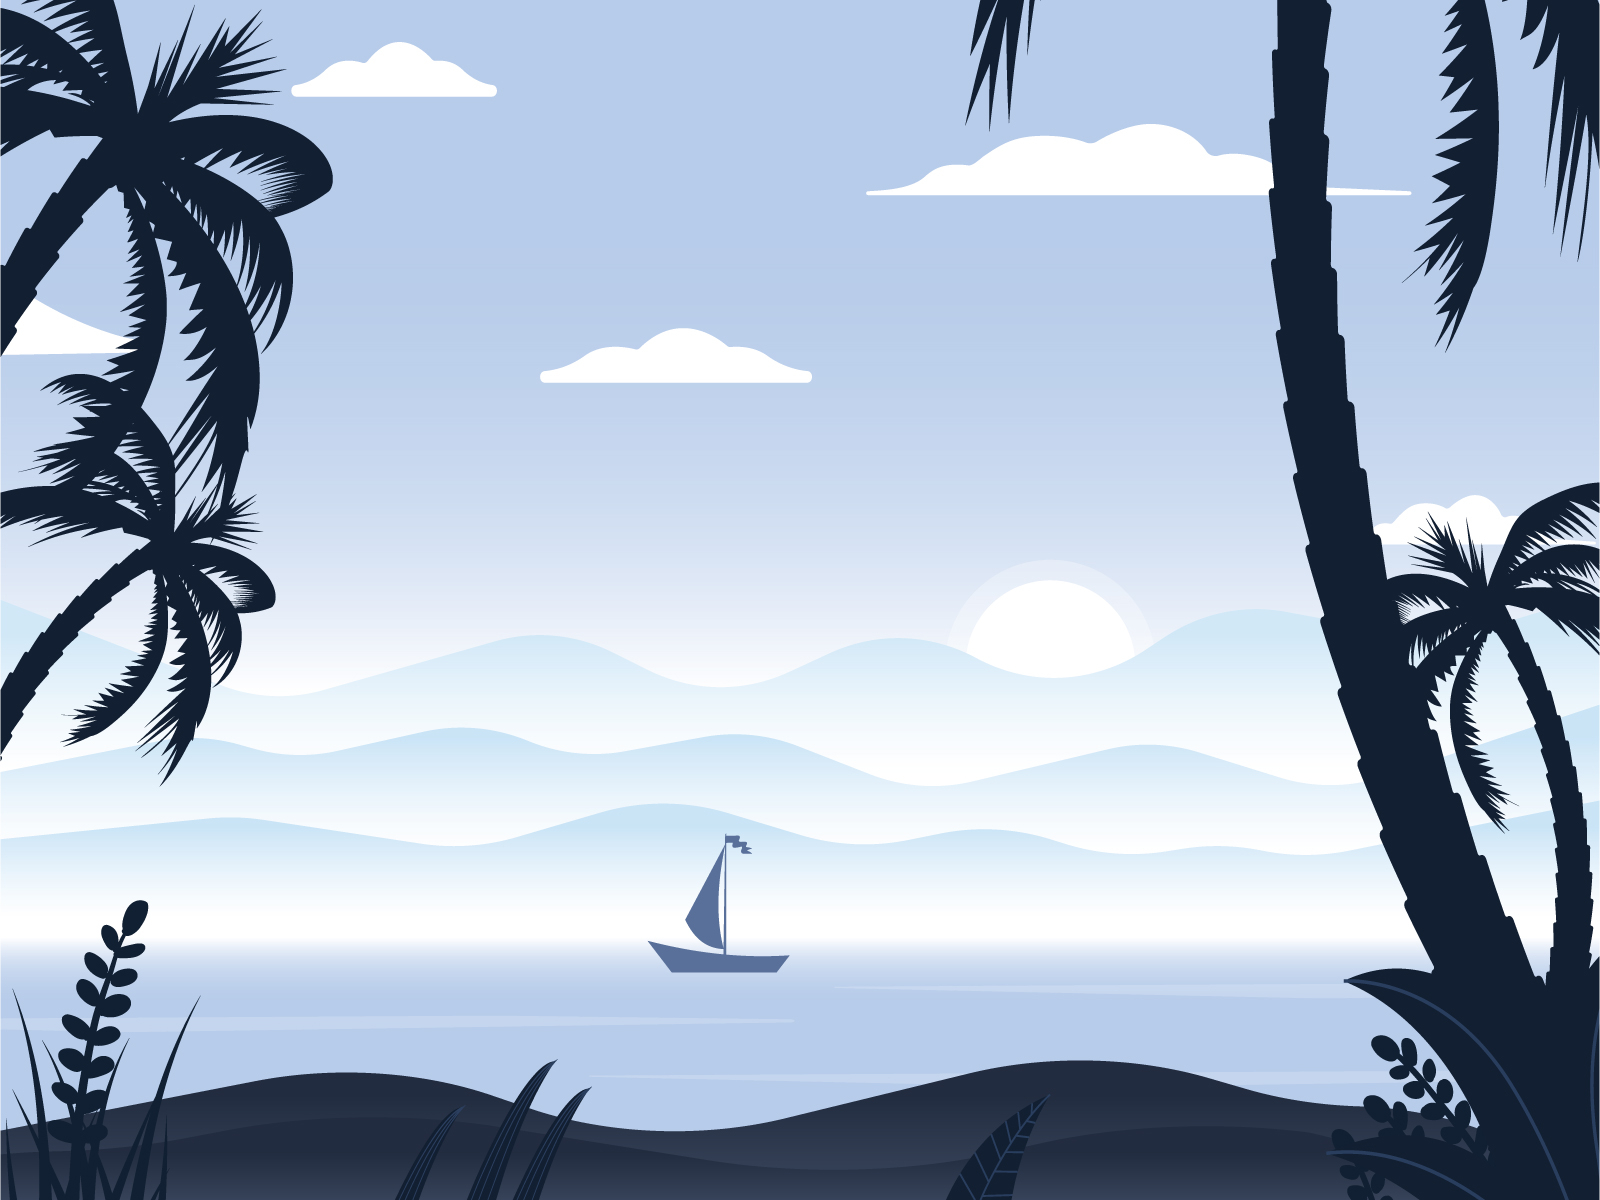 Sunkissed: a collection of refreshing summer illustrations:Sunrise Beach by Roman